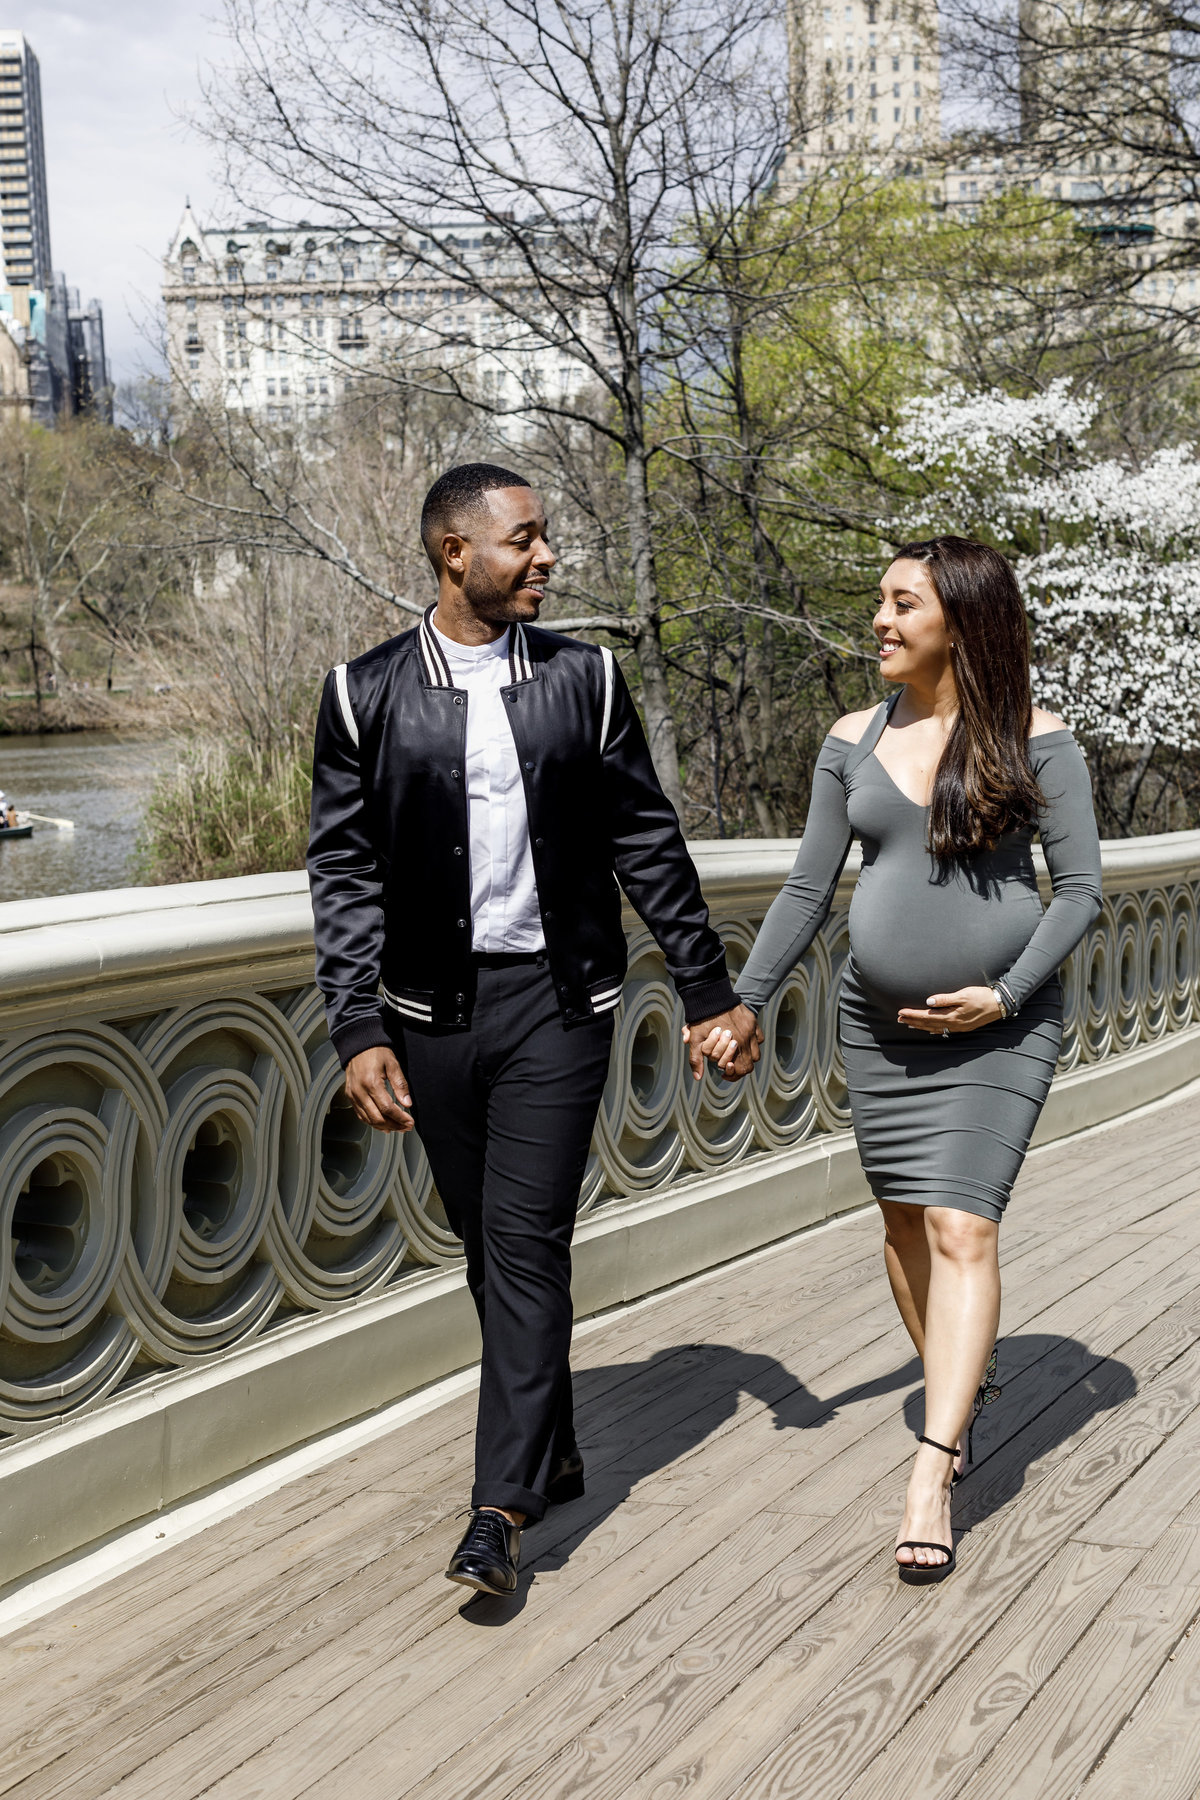 City_Maternity_Session_Inspiration_New_York_Amy_Anaiz012